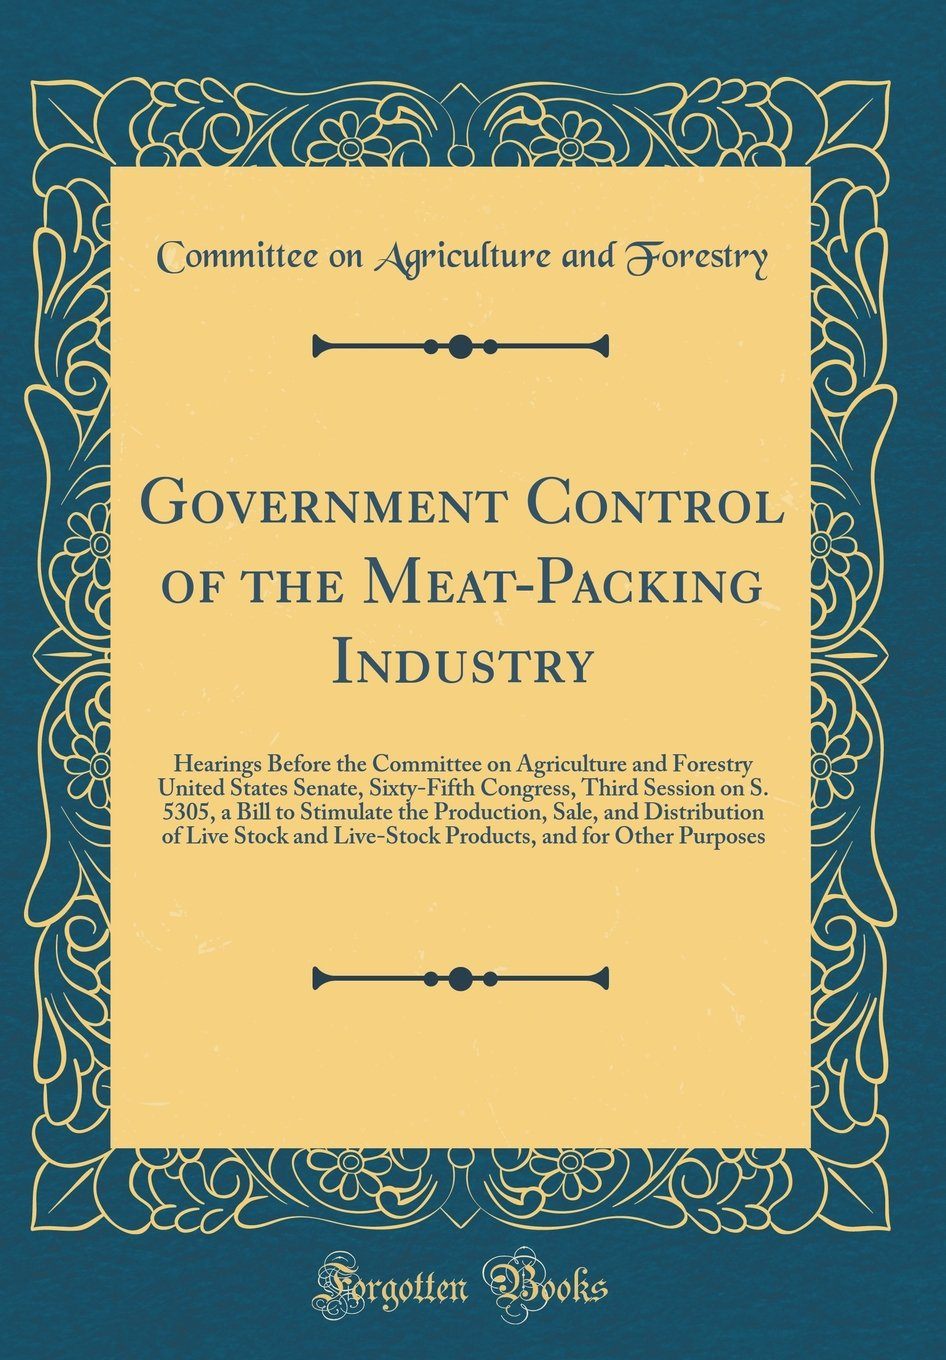 Download Government Control of the Meat-Packing Industry: Hearings Before the Committee on Agriculture and Forestry United States Senate, Sixty-Fifth Congress, ... Sale, and Distribution of Live Stock and L PDF